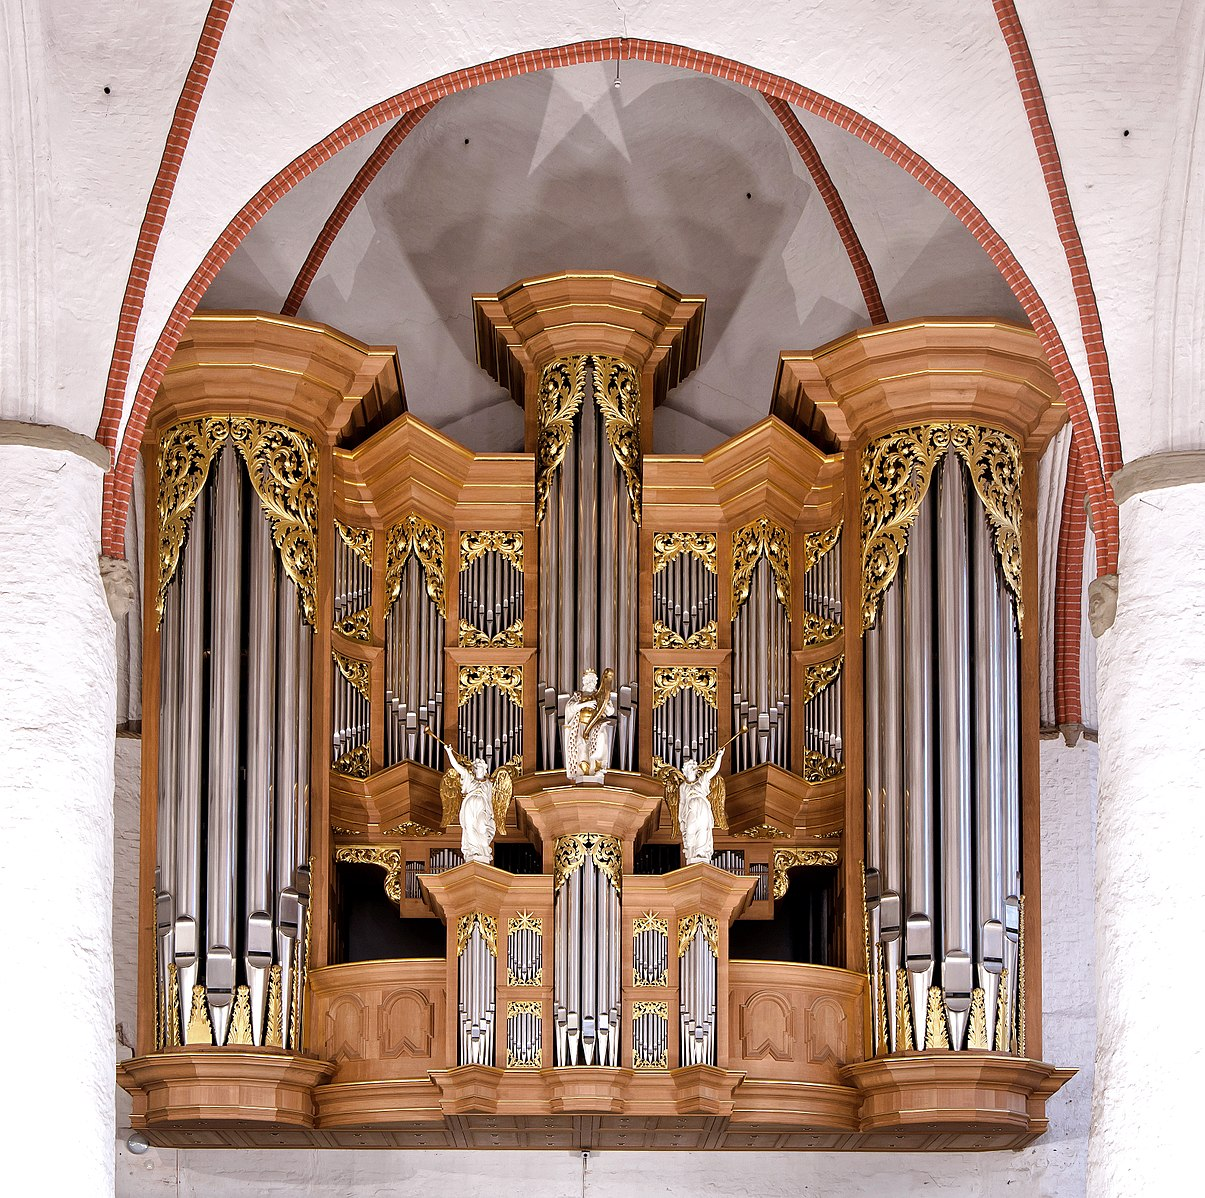 1693 SCHNITGER ORGAN, ST. JACOBI, HAMBURG, GERMANY